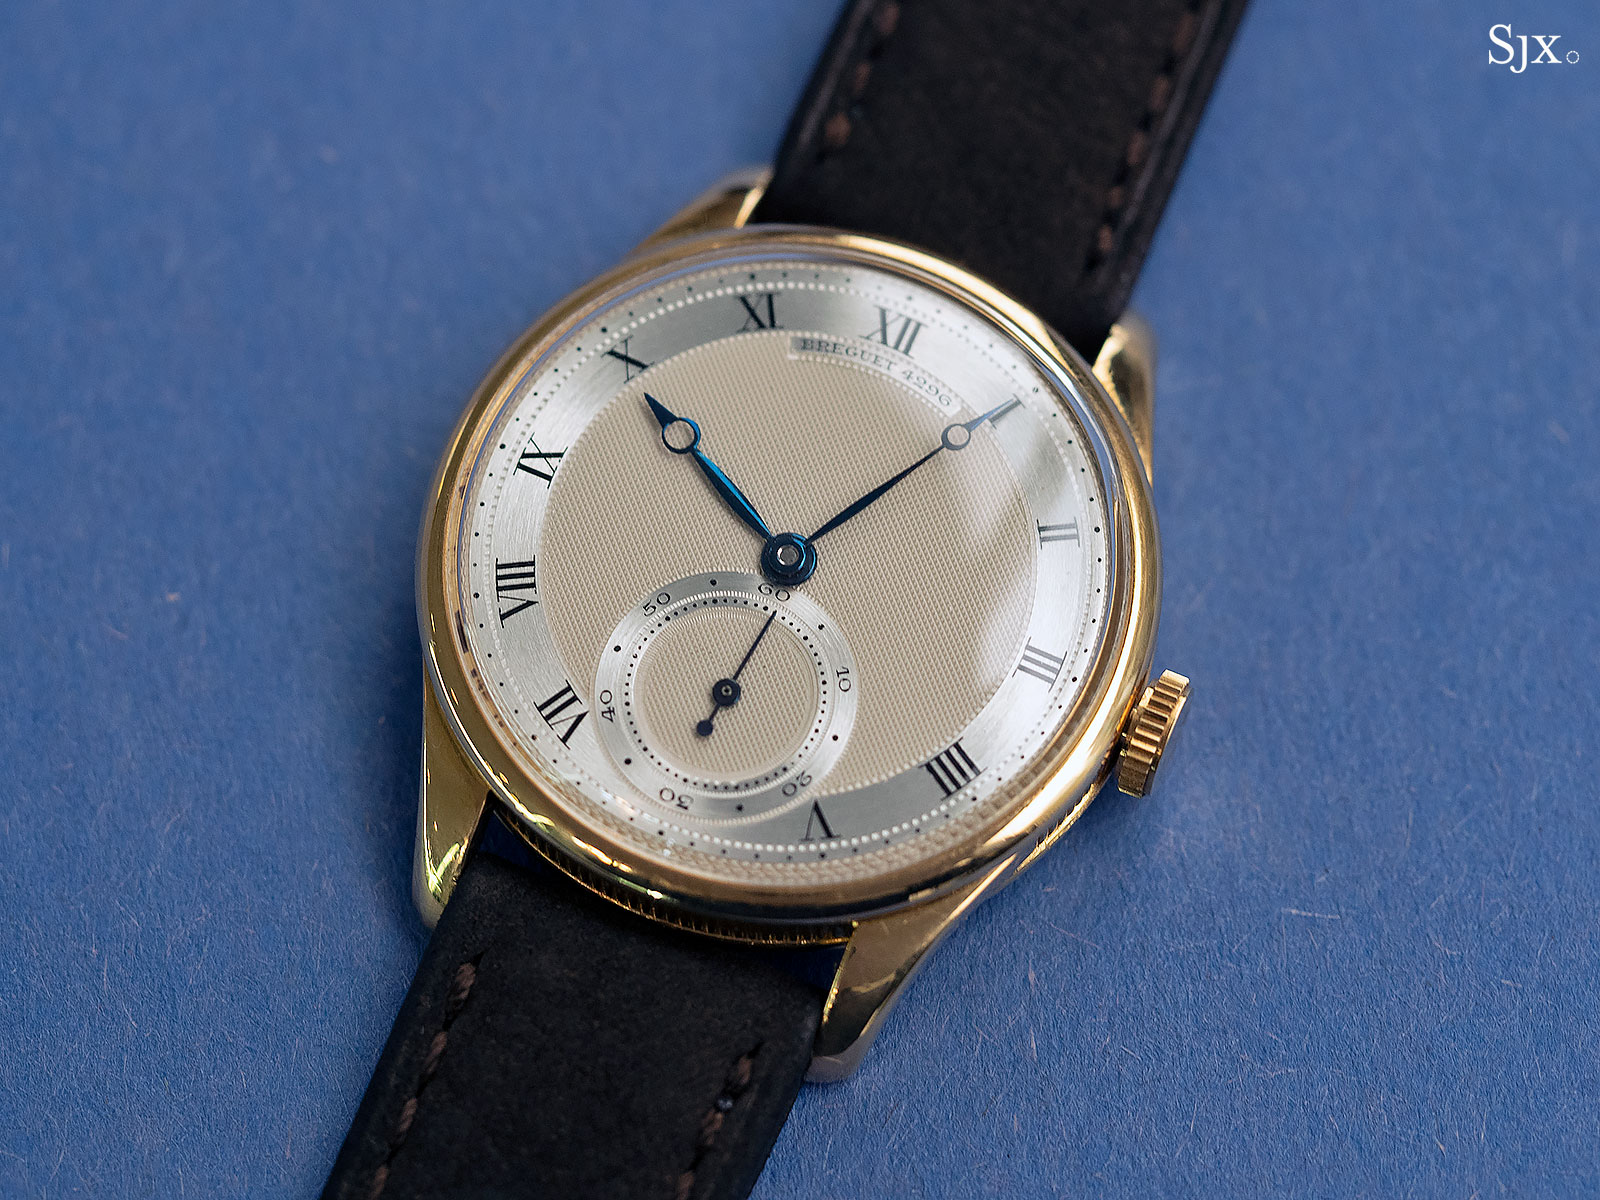 Breguet time-only chronometer 4296-3